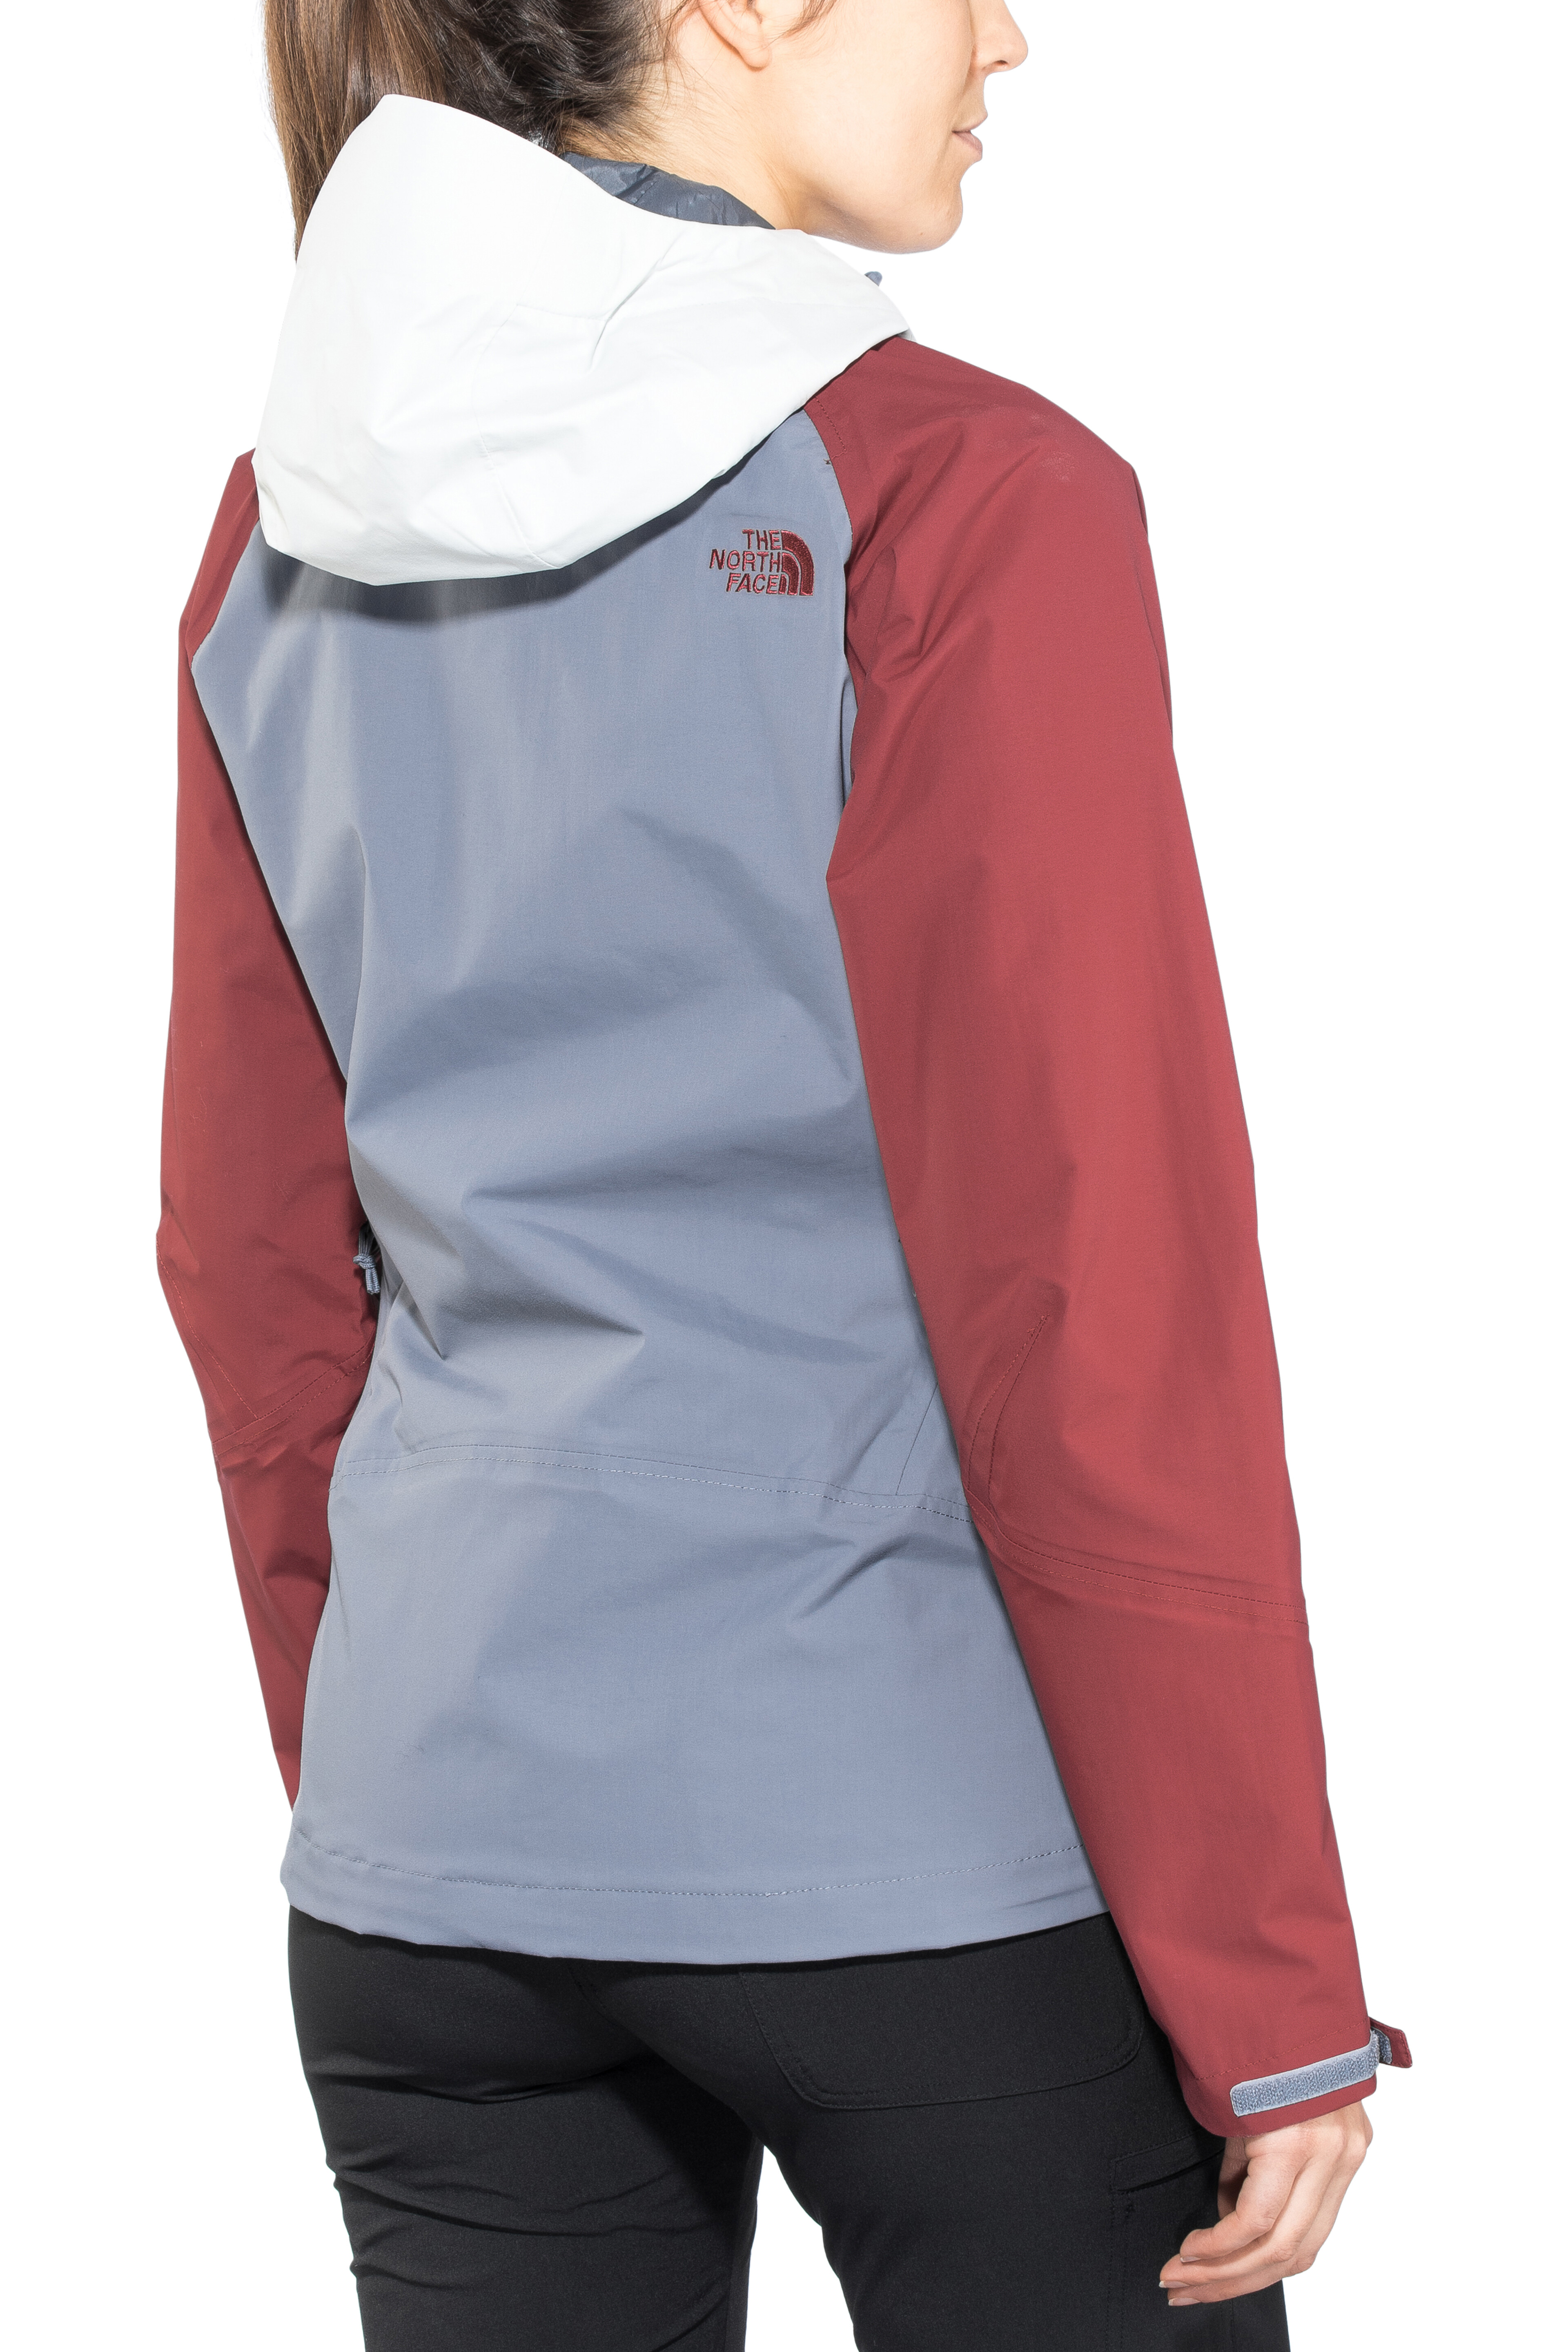 2fbe33a738 The North Face Stratos - Veste Femme - gris/rouge sur CAMPZ !